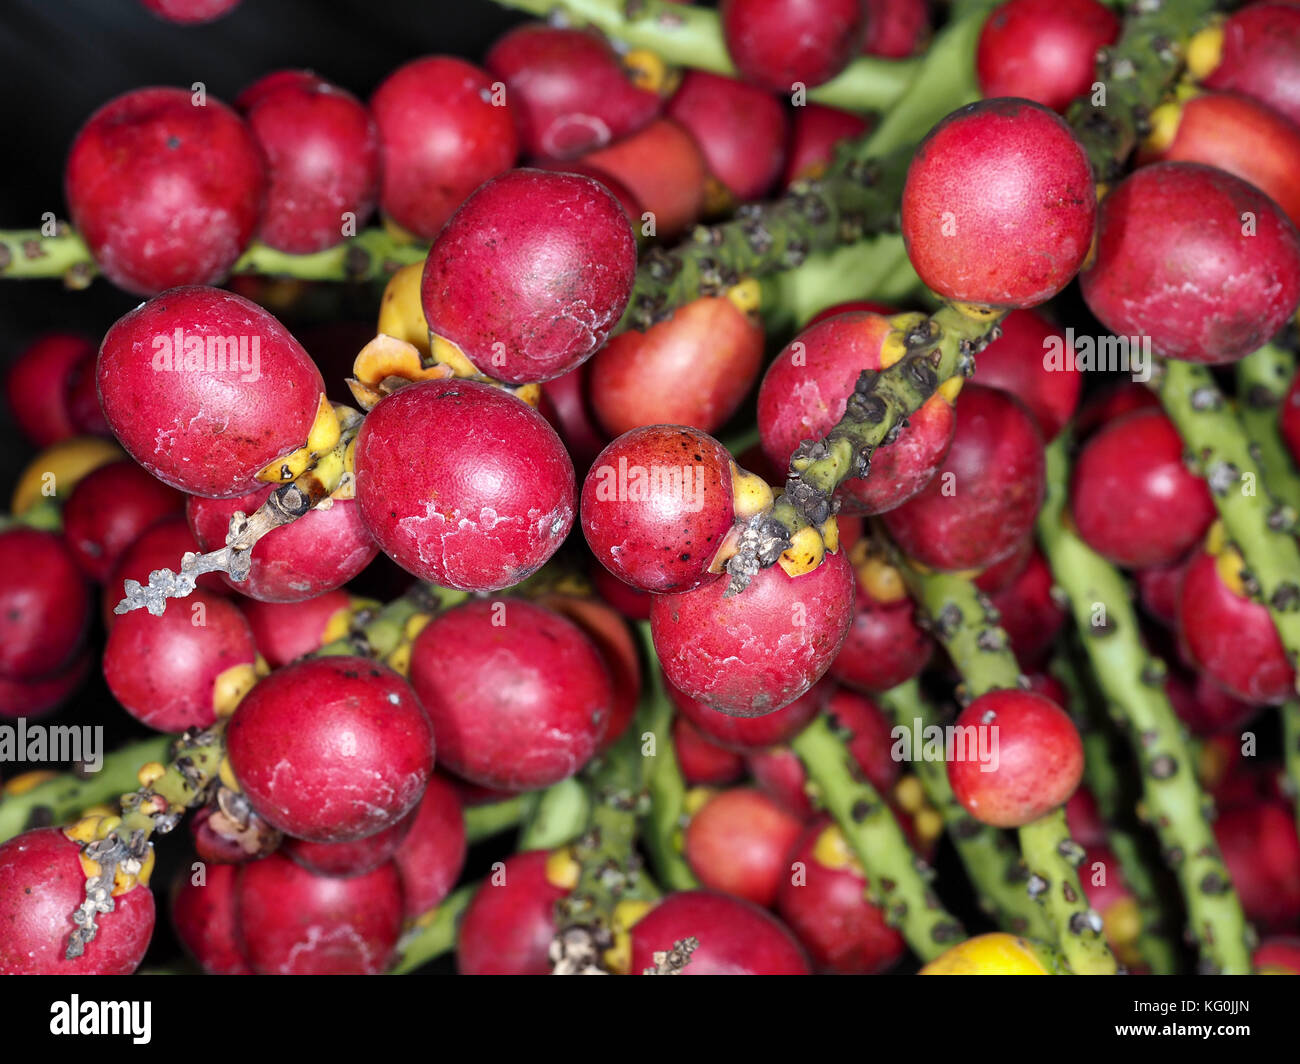 Dwarf sugar palm (Arenga engleri) fruits (known to cause a severe allergic reaction) close-up Stock Photo